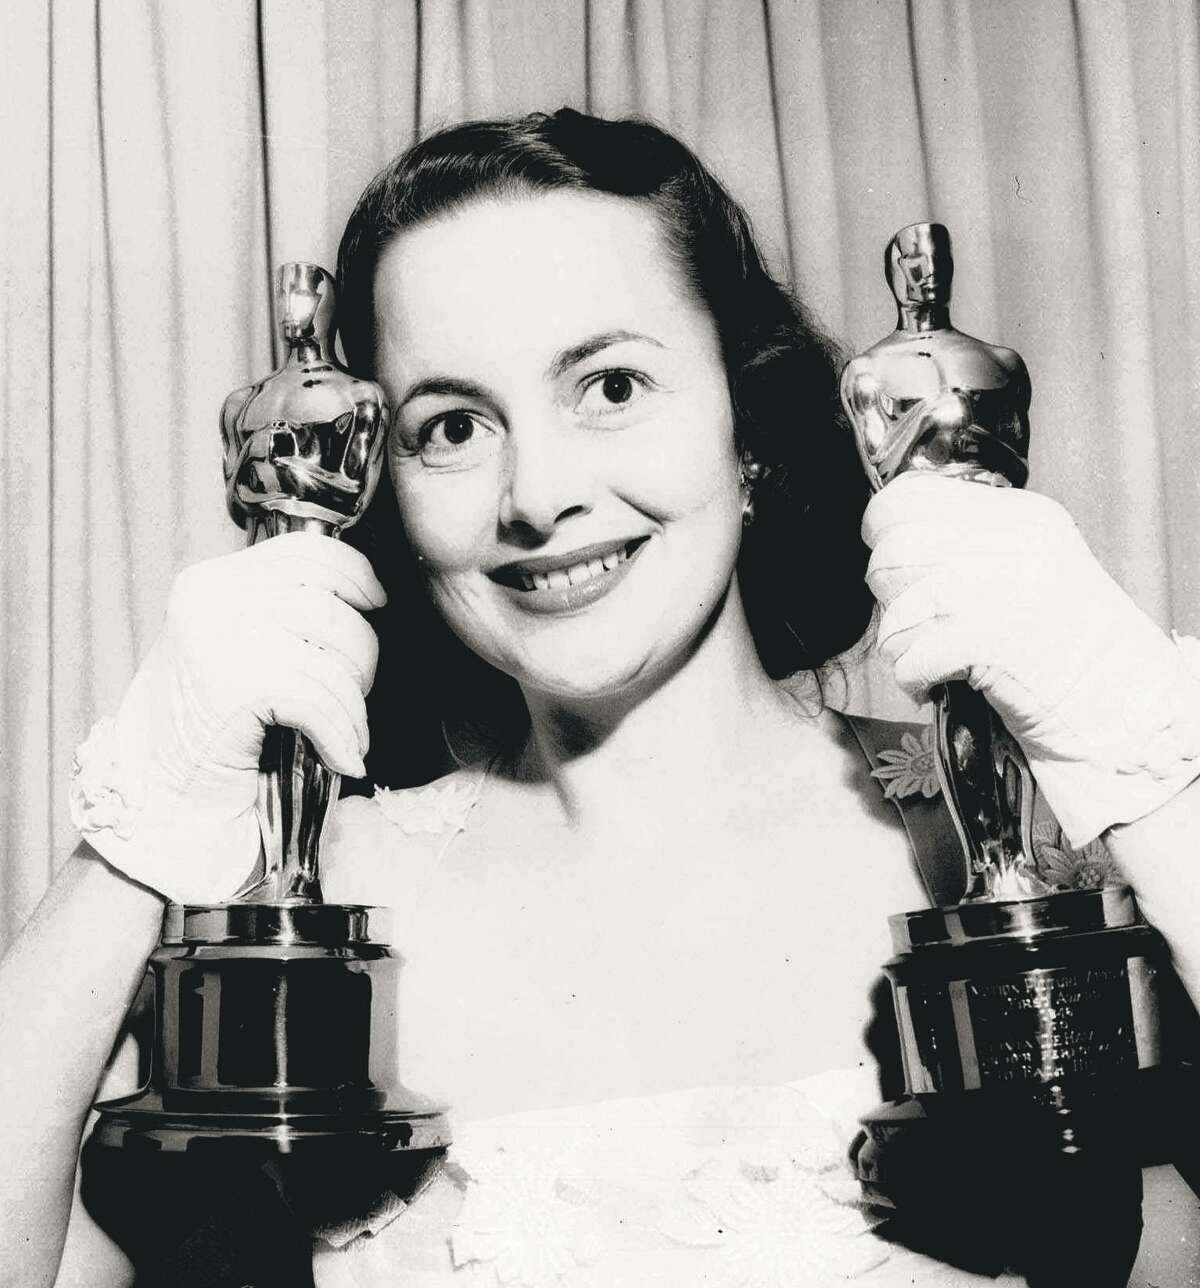 At 102, Olivia de Havilland likely has several obituaries already written about her.